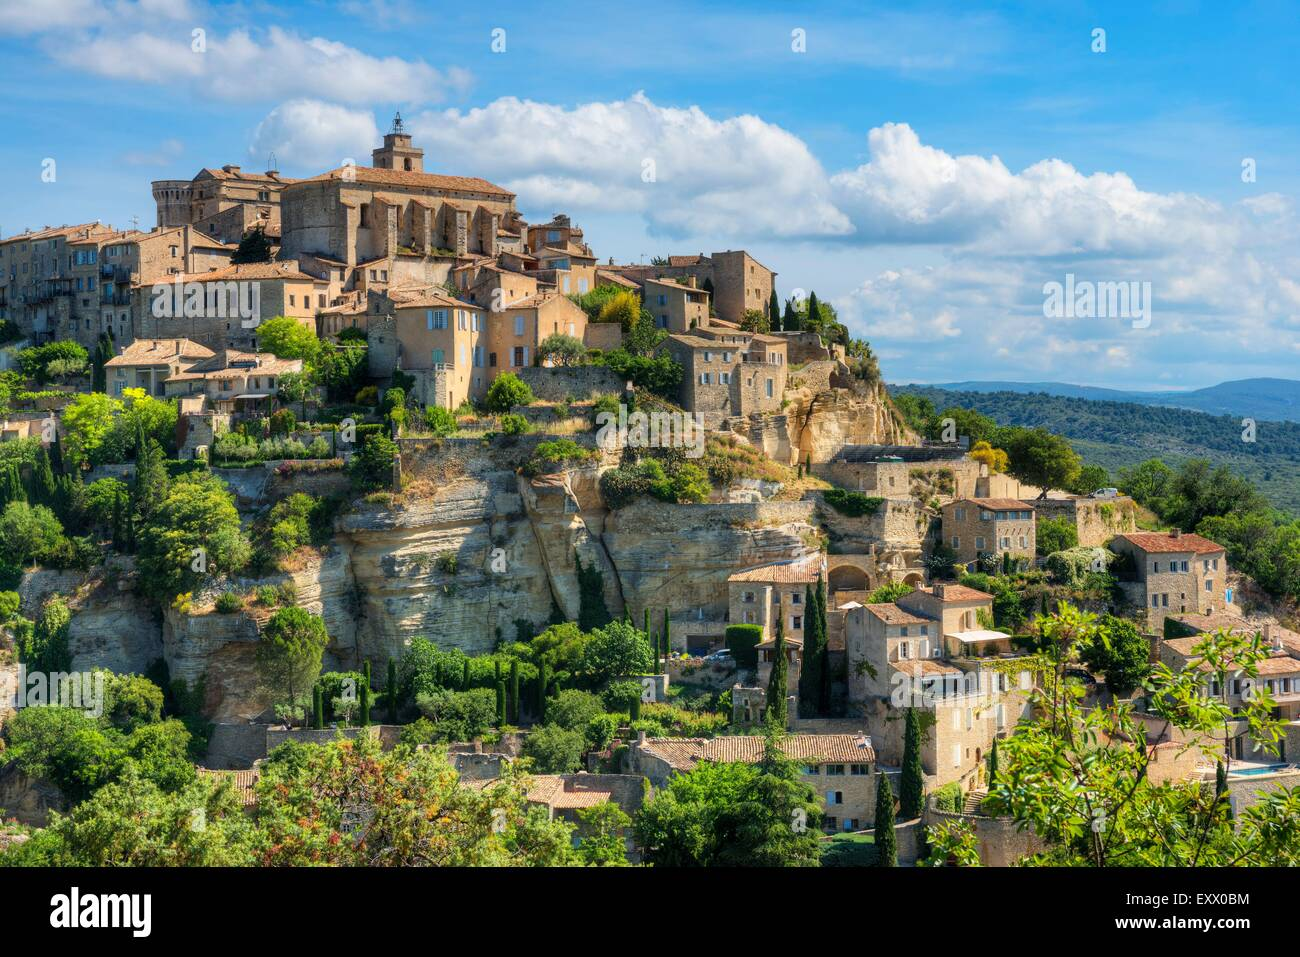 gordes vaucluse provence alpes cote d azur france europe stock photo 85393608 alamy. Black Bedroom Furniture Sets. Home Design Ideas